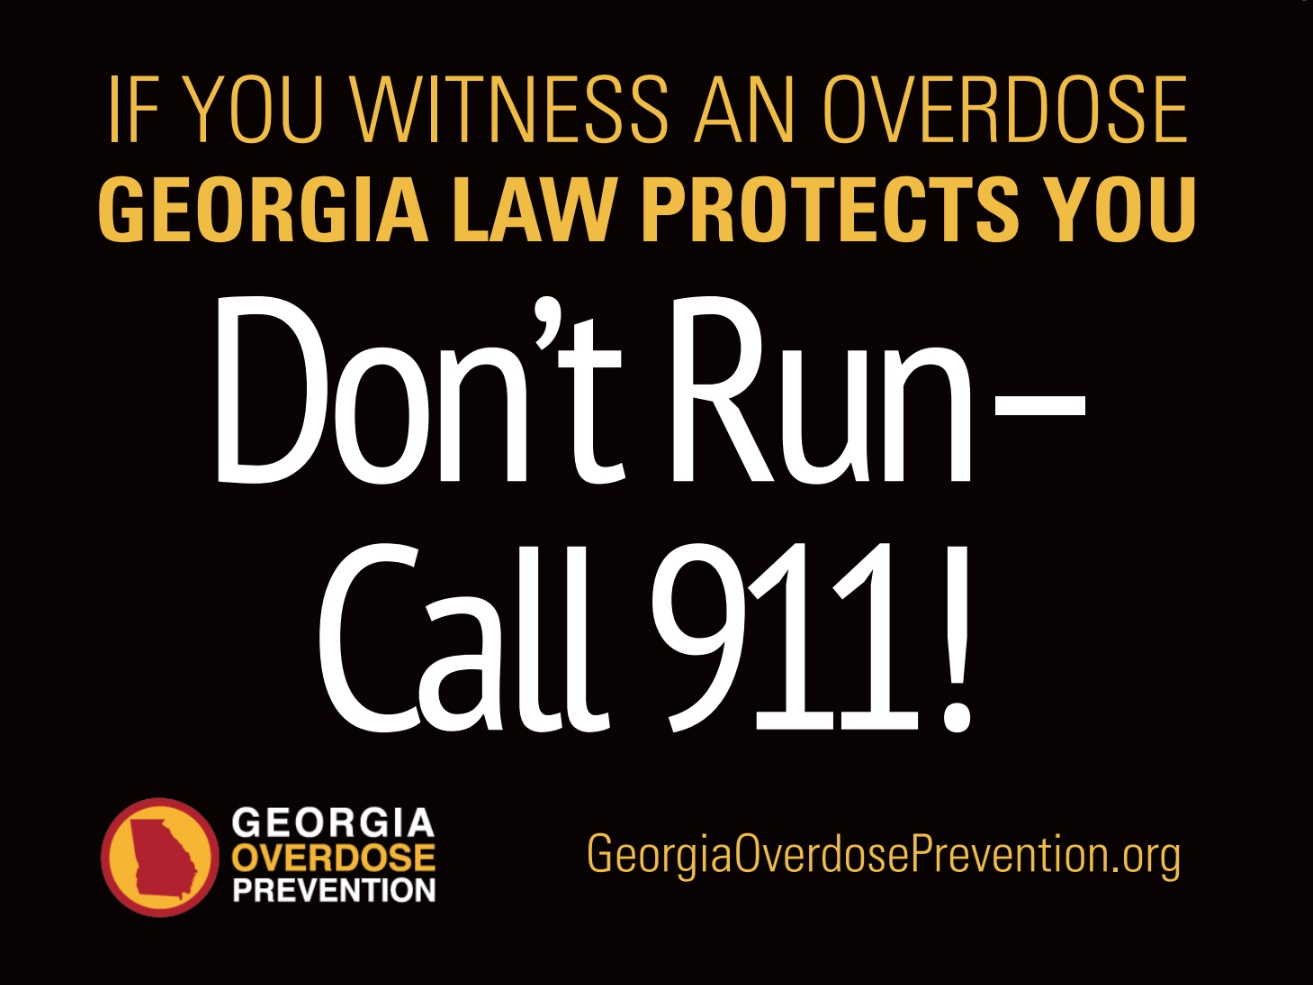 Georgia 911 Medical Amnesty law - Georgia provides limited immunity from being arrested, charged, and prosecuted for possession of certain amounts of drugs and drug paraphernalia for the victim of an overdose and the 911 caller who seeks help for the victim. This immunity also applies to a medical emergency involving an underaged drinker and the 911 caller who seeks help for them.